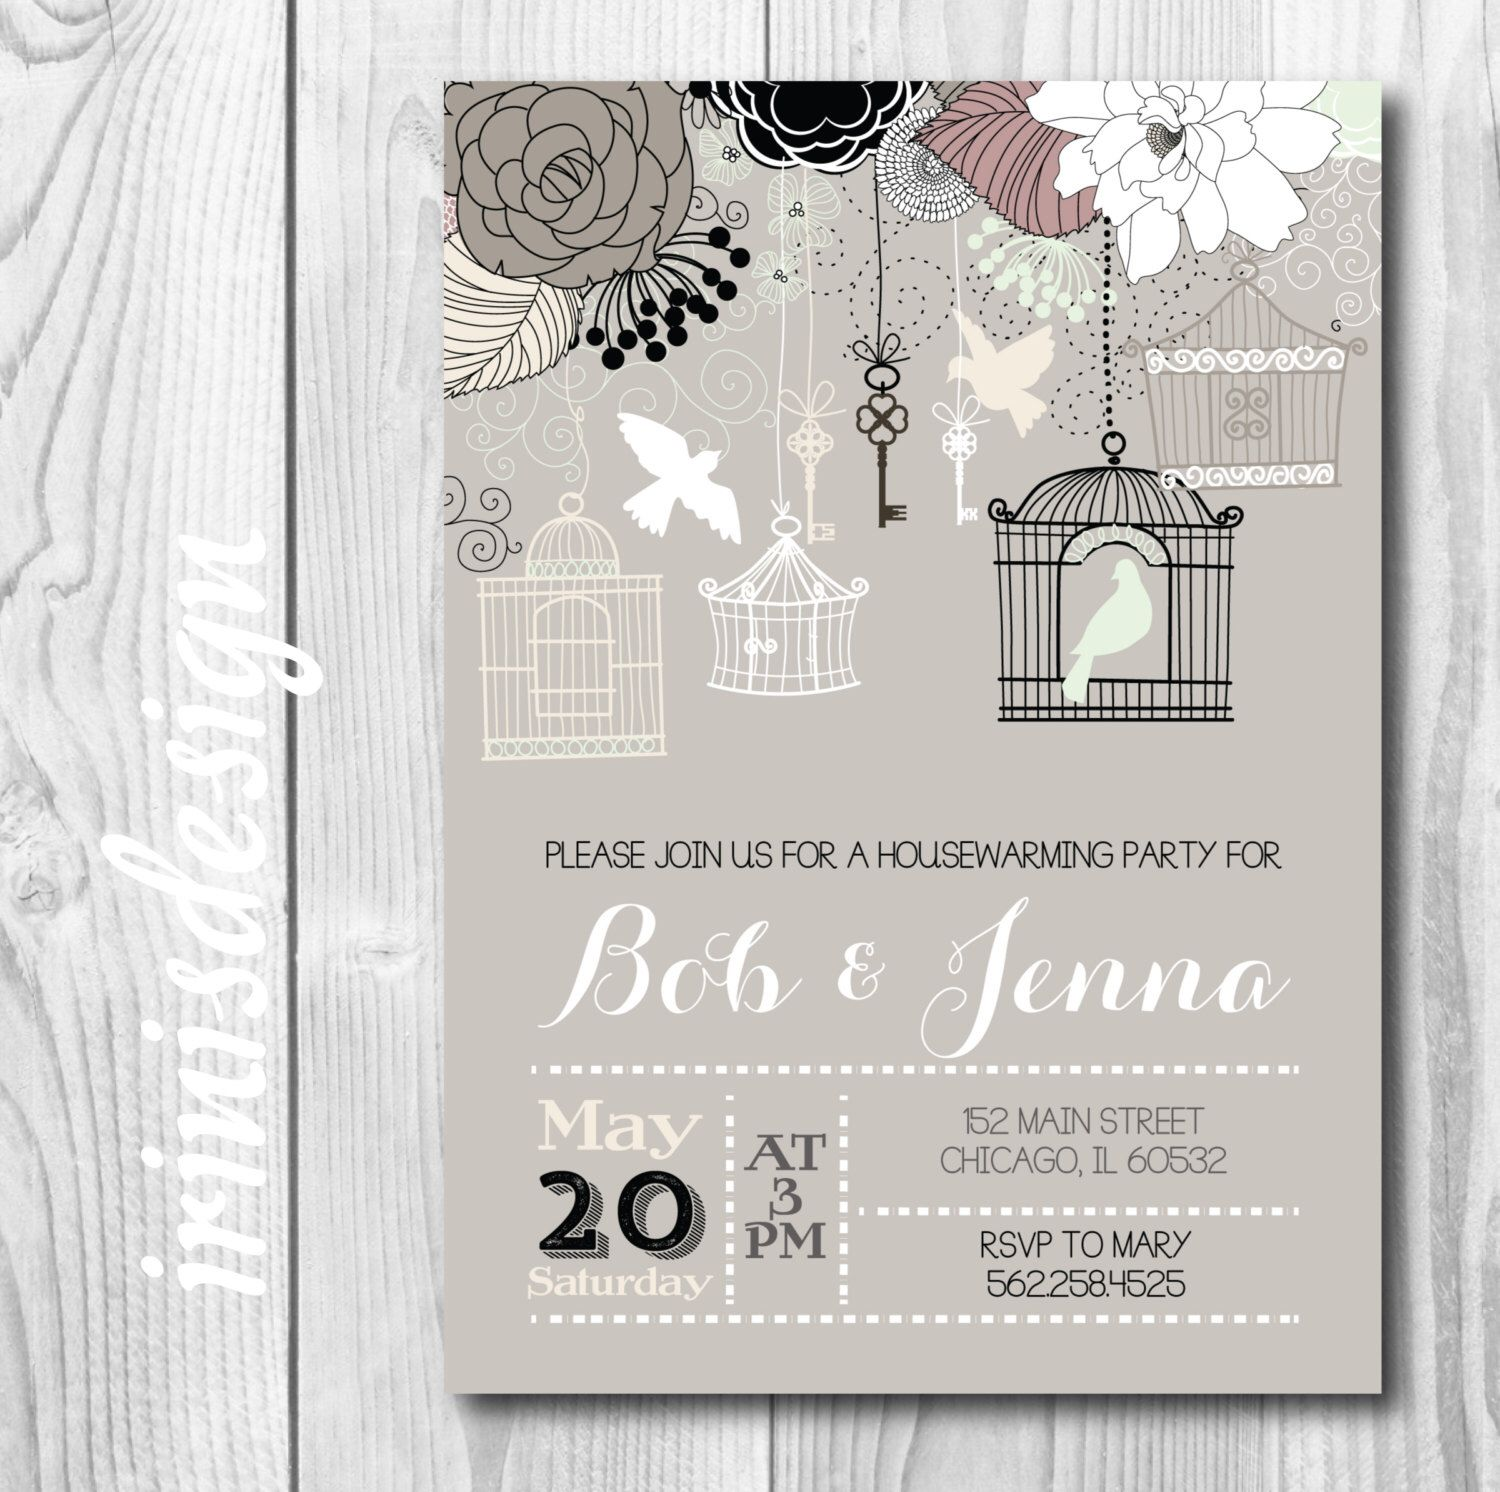 Housewarming Party Invitation Invite | neutral gray taupe mint green pink birds cage tree keys printable 39 by irinisdesign on Etsy https://www.etsy.com/listing/232221558/housewarming-party-invitation-invite